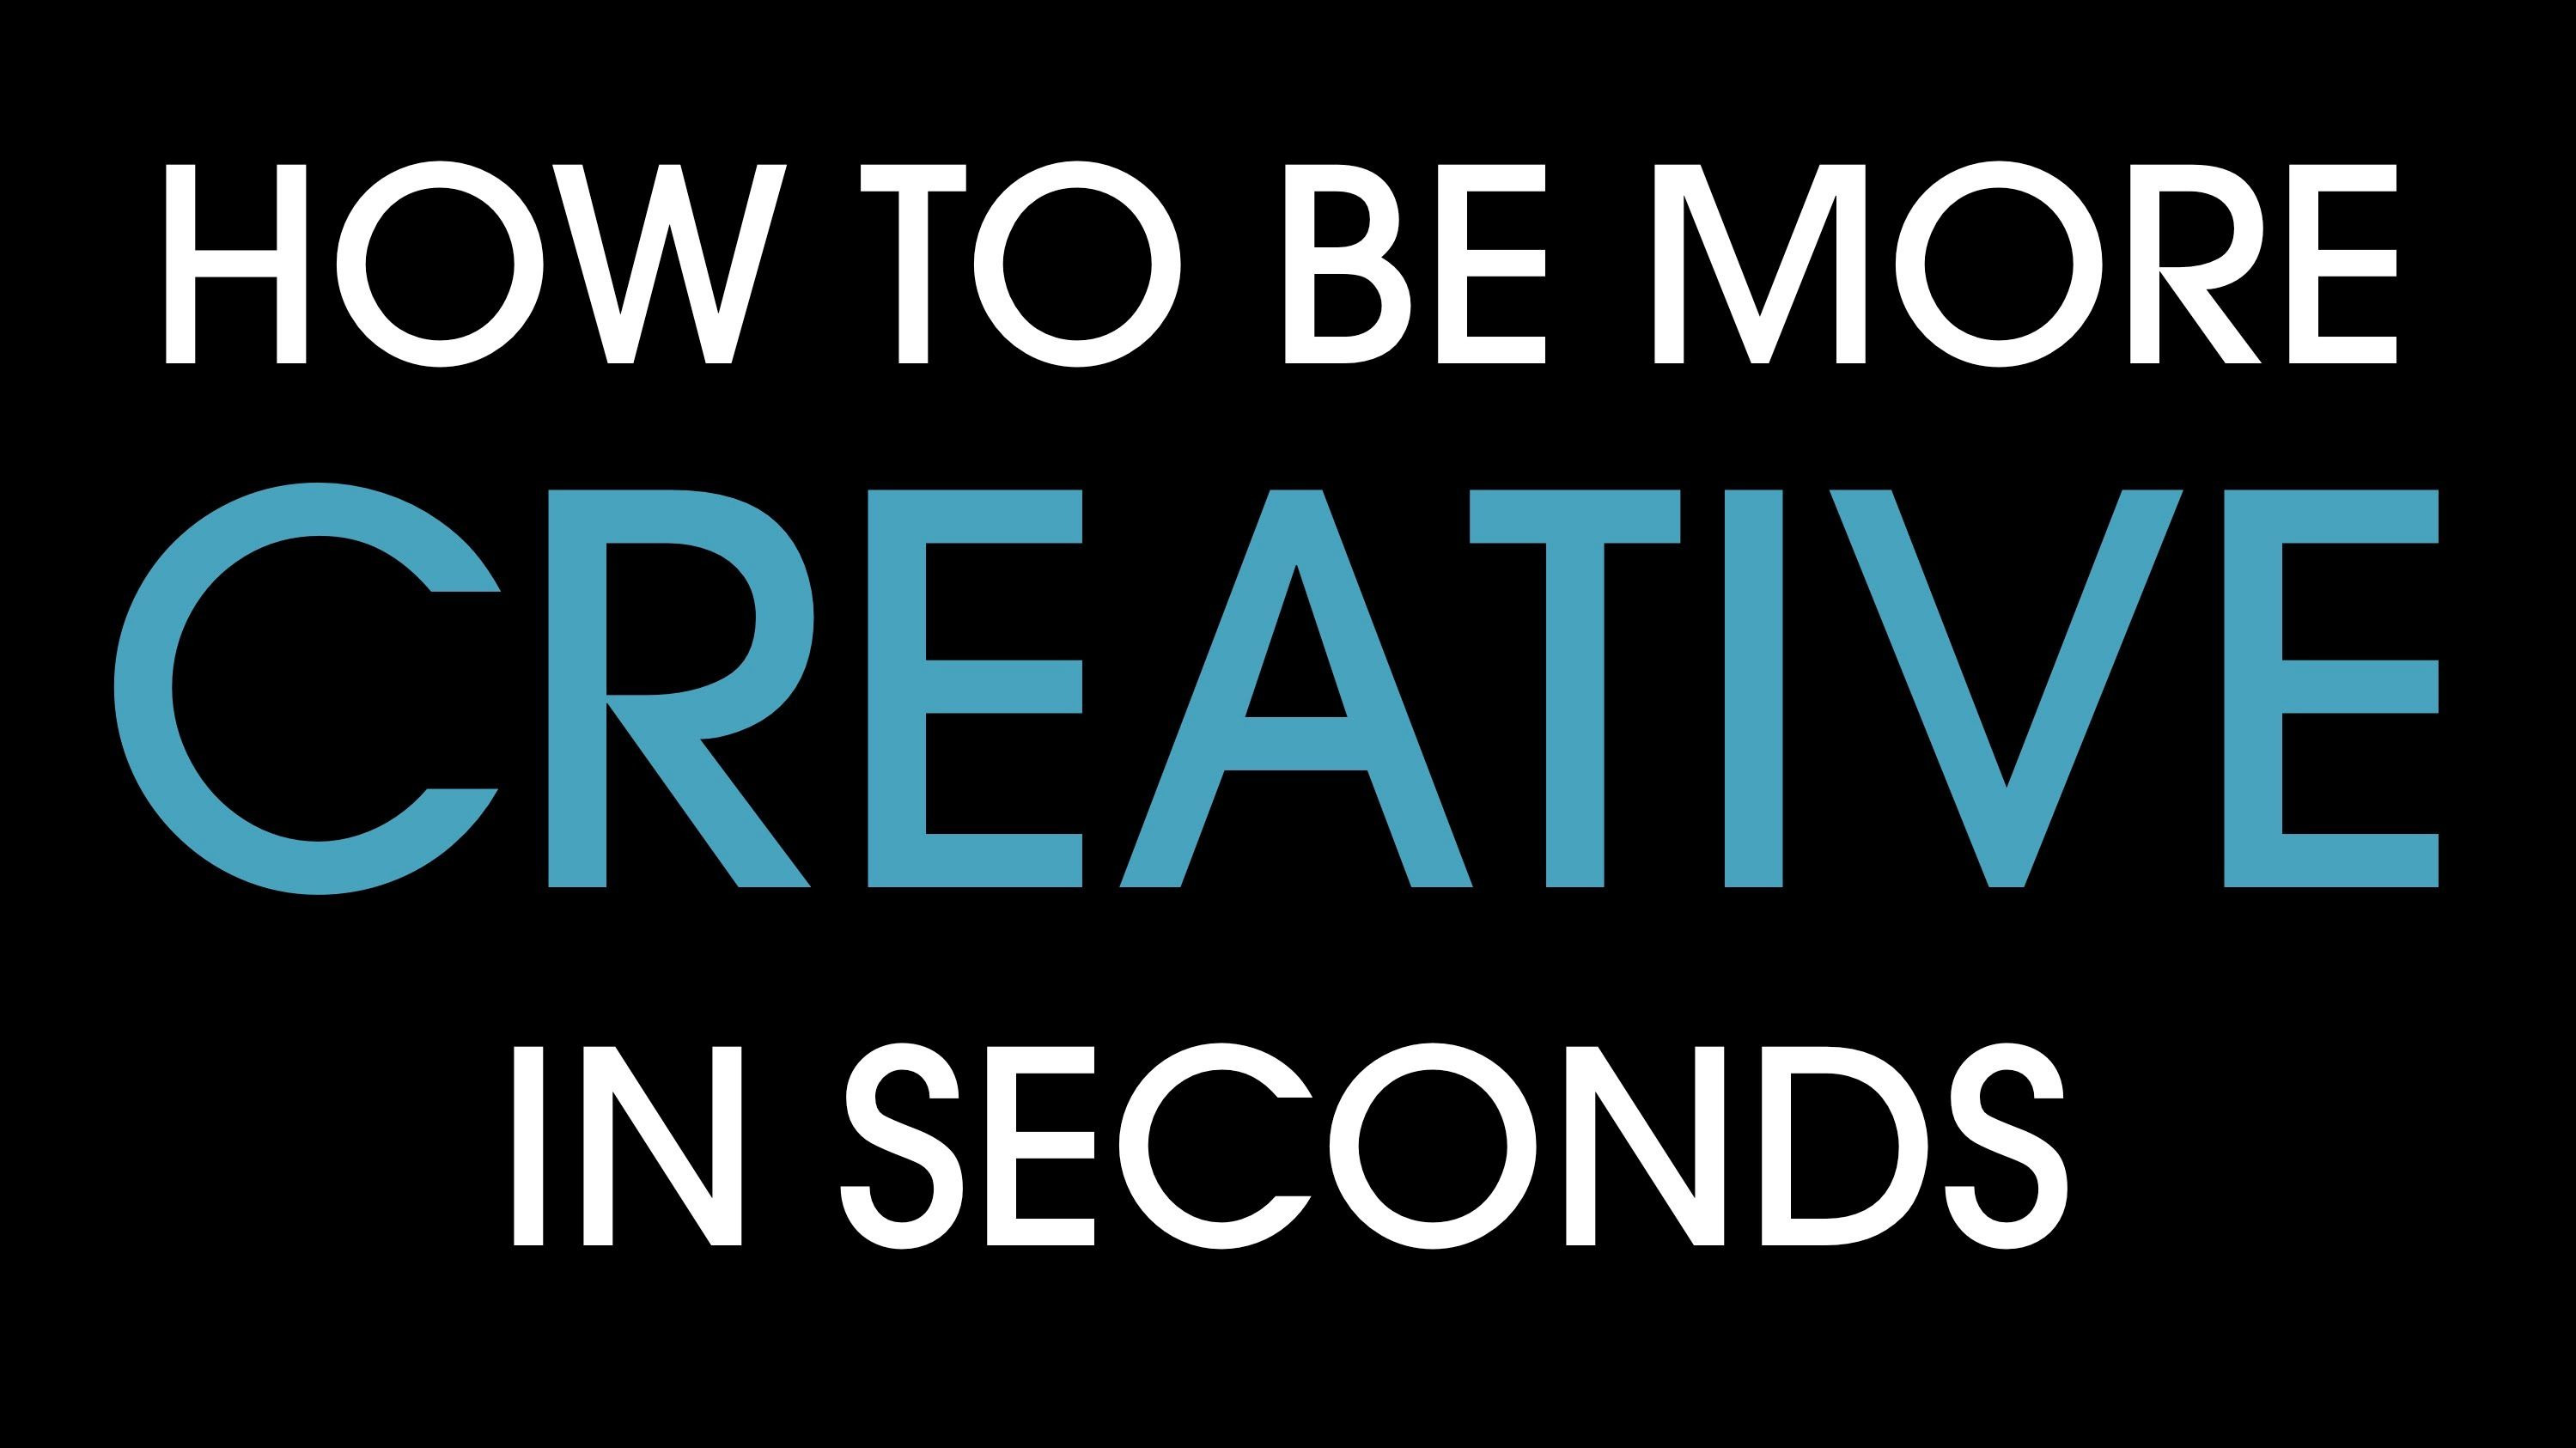 how to be more creative in seconds in59seconds pinterest creative